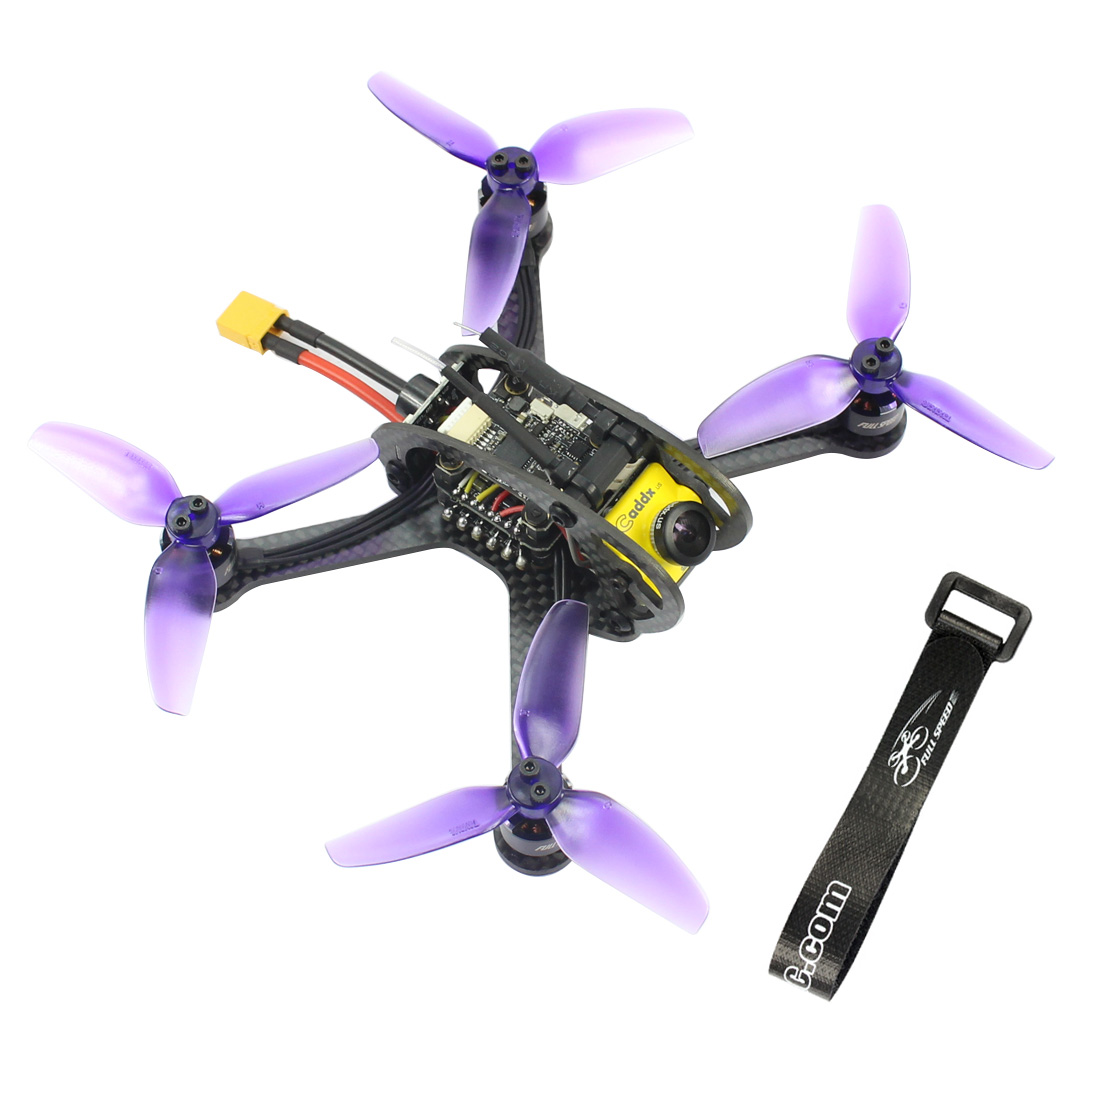 Leader 3SE/ 3 130mm <font><b>FPV</b></font> RC Helicopter <font><b>Mini</b></font> Quadcopter F4 OSD 28A BLHeli_S 48CH 600mW Caddx Micro F1 PNP /BNF for FRSKY FLYSKY image